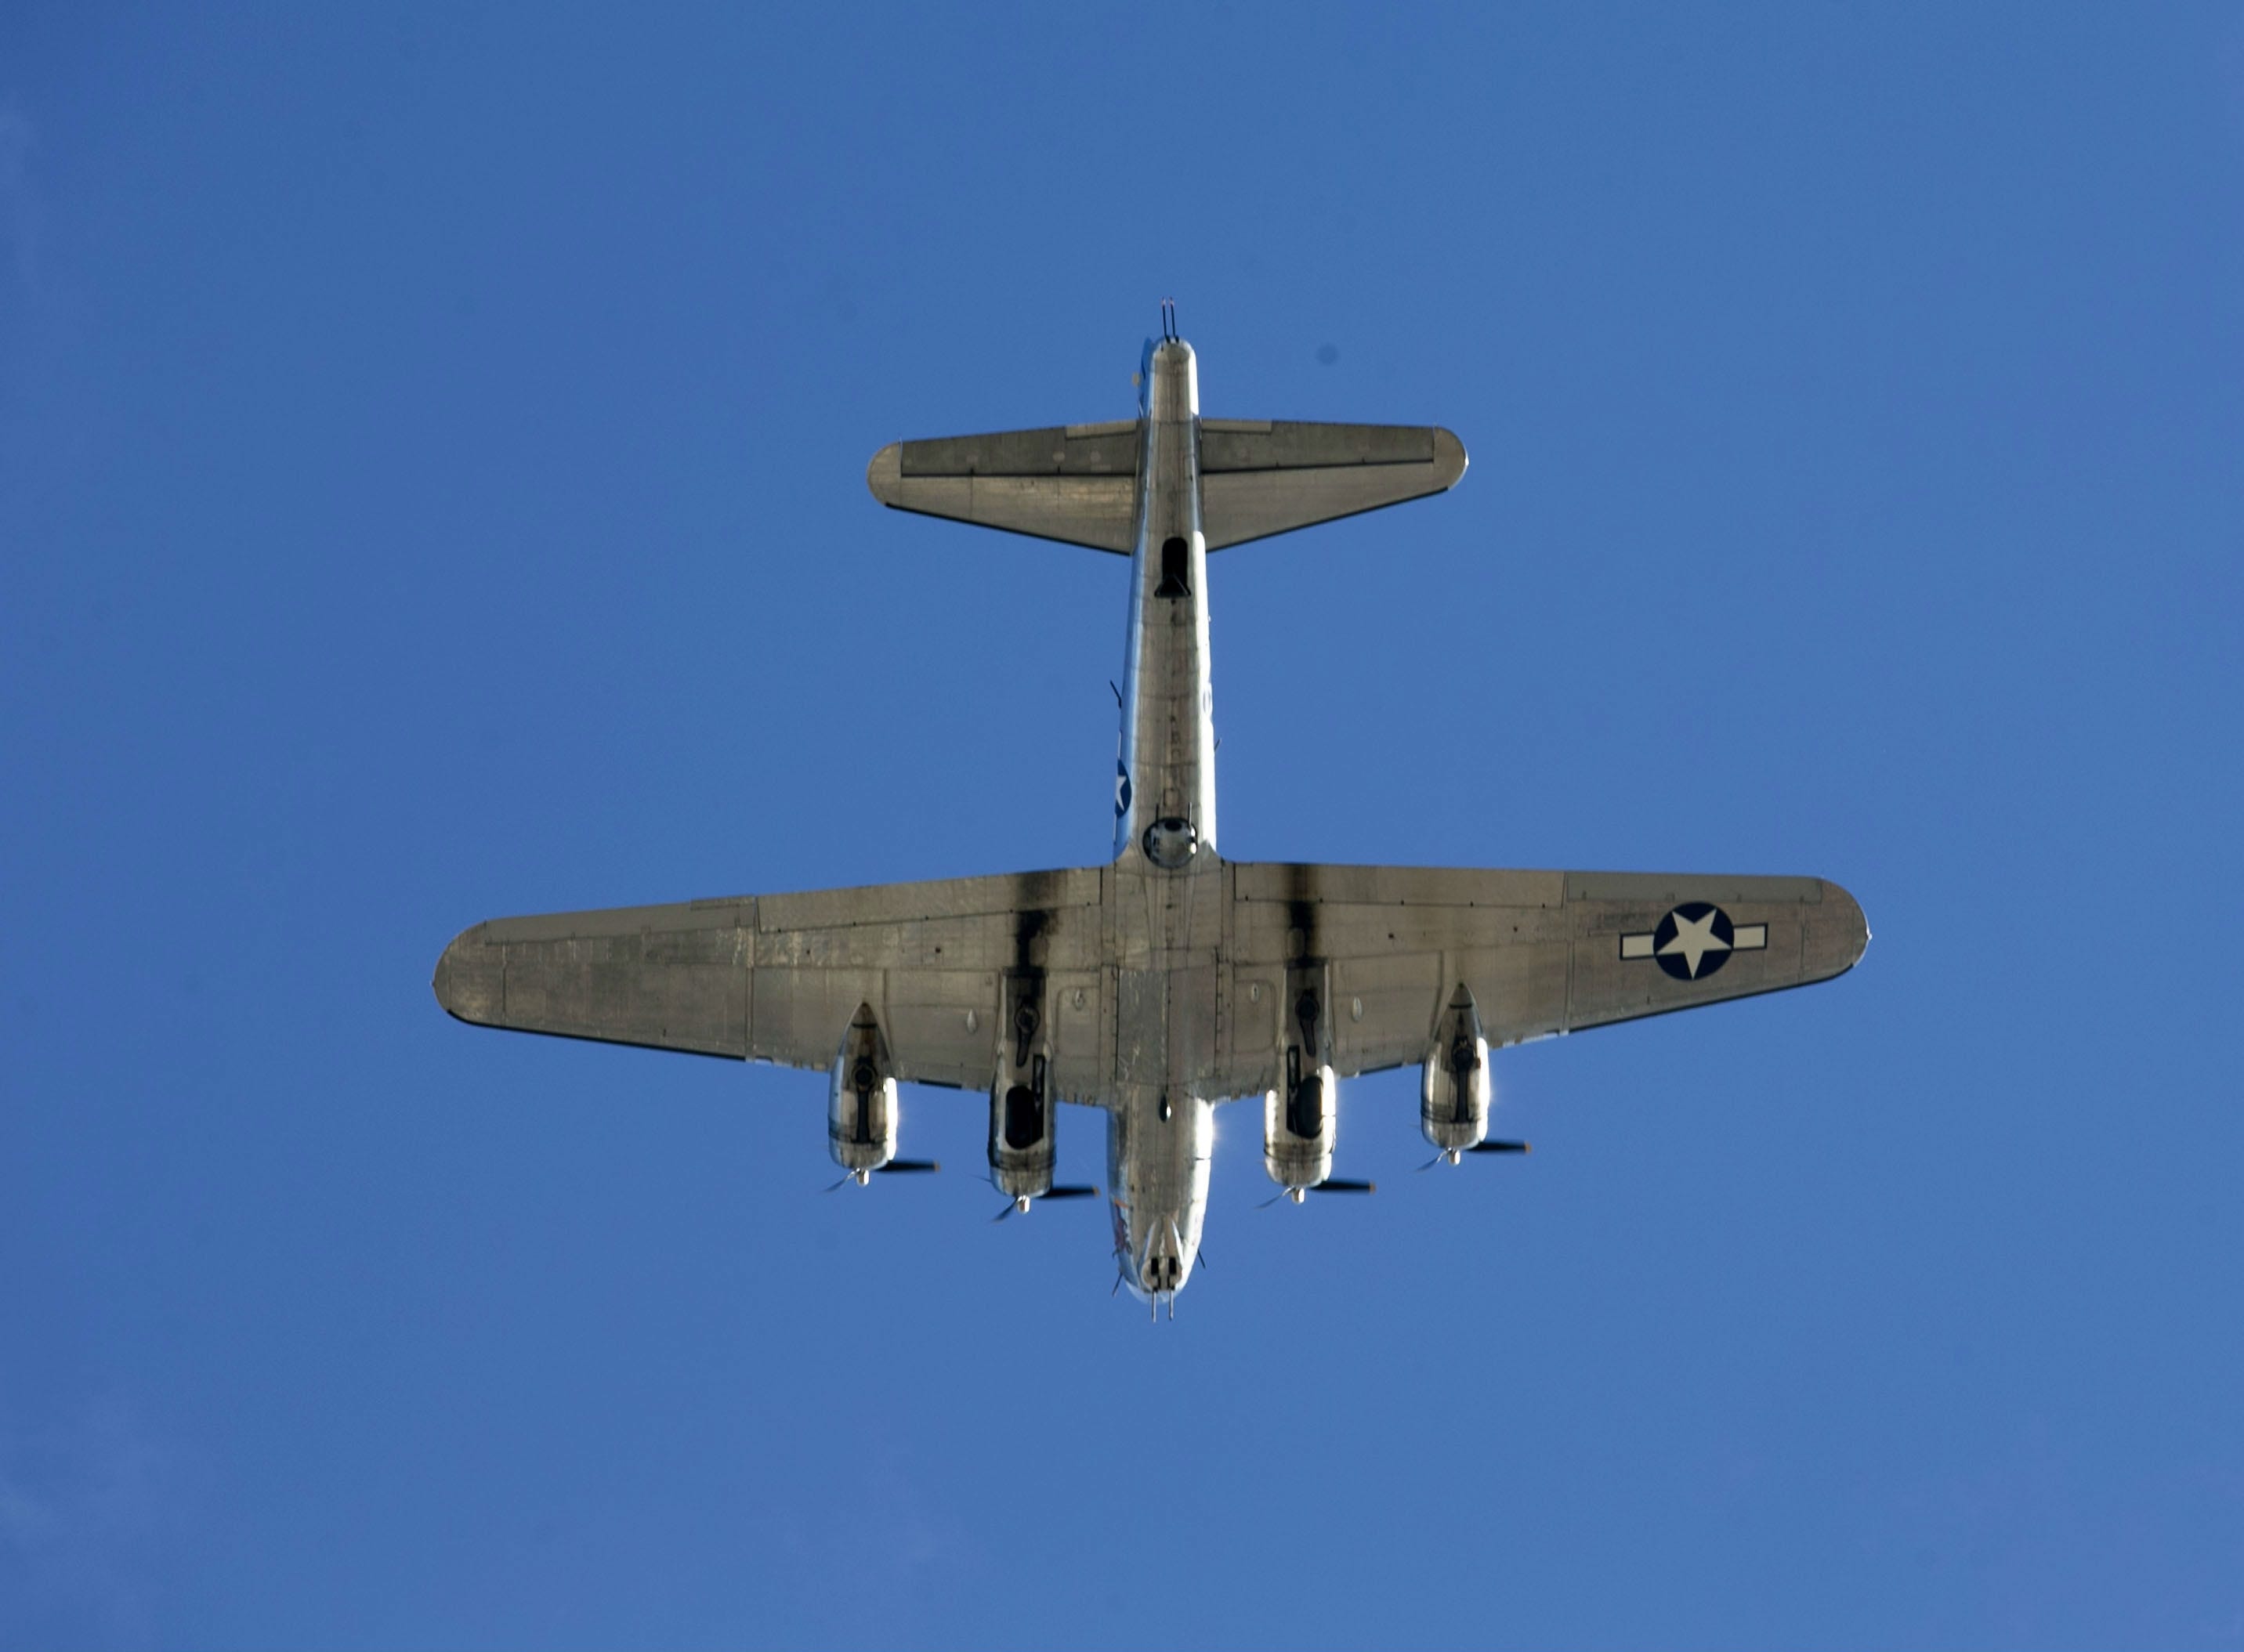 A World War II era B-17 bomber does a flyover during a Pearl Harbor Remembrance Day event at Wesley Bolin Plaza in Phoenix on Dec. 7, 2018, the 77th anniversary of the attack on Pearl Harbor.